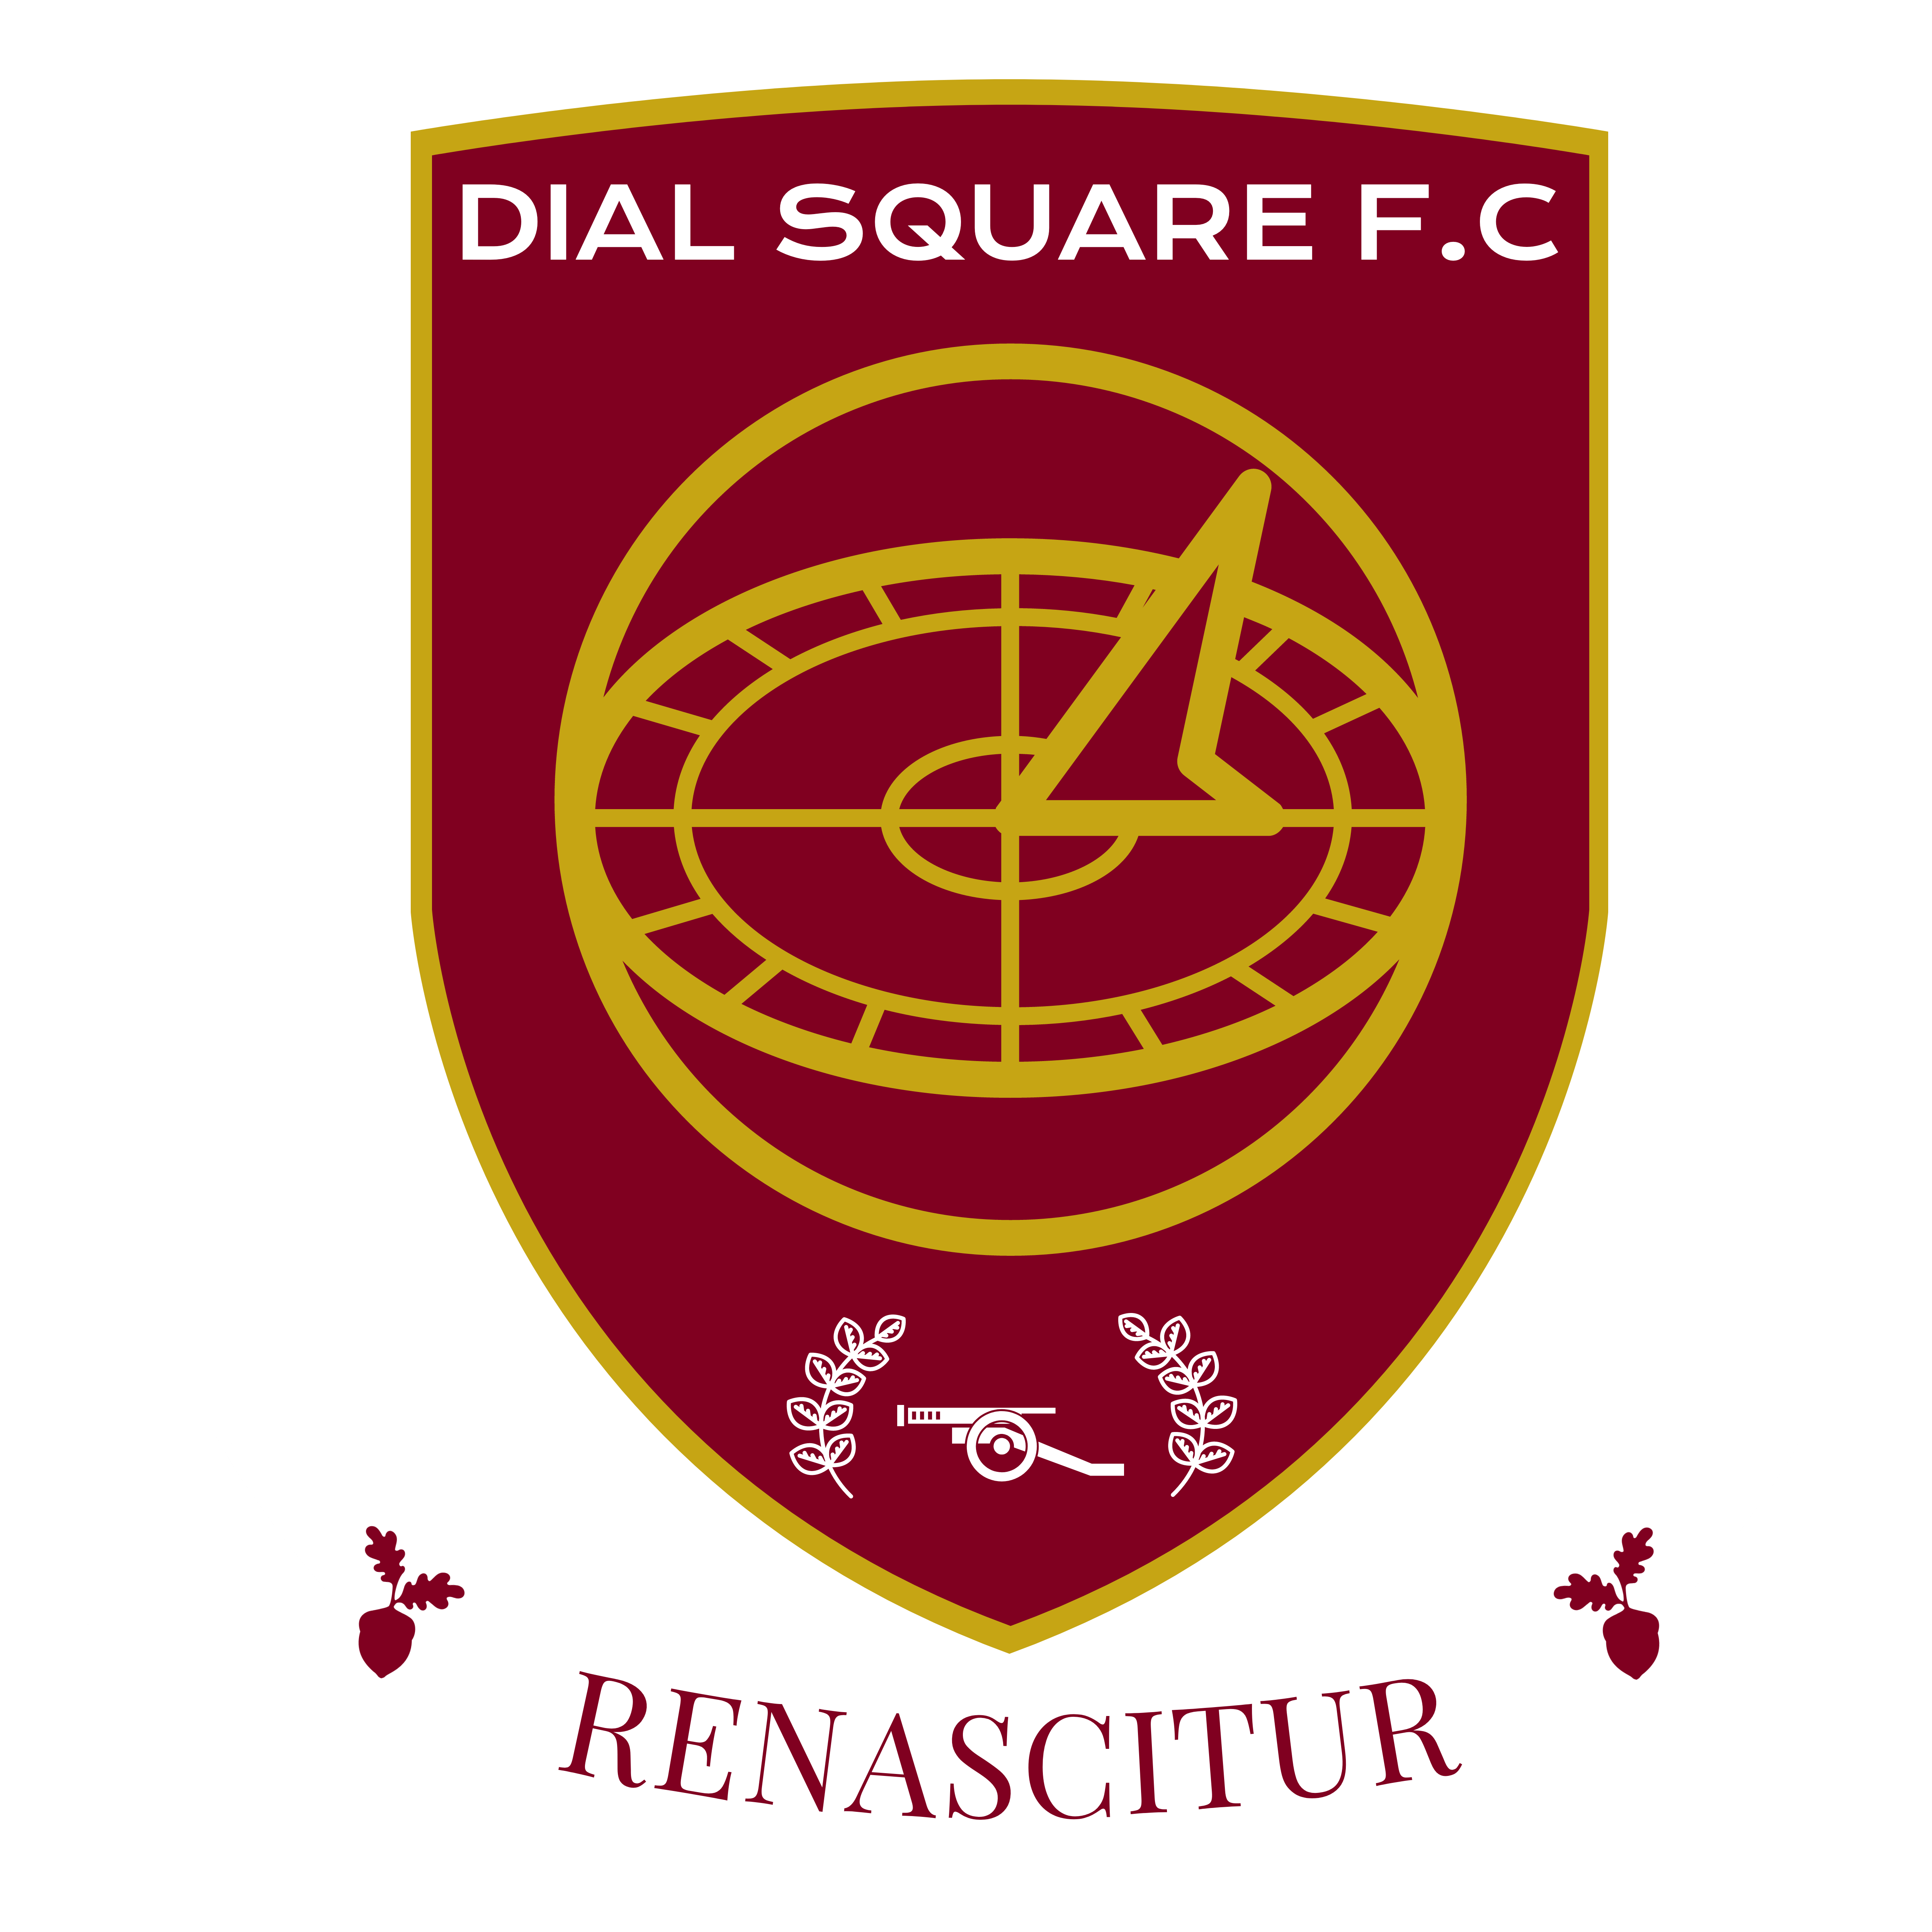 Crest of Dial Square FC